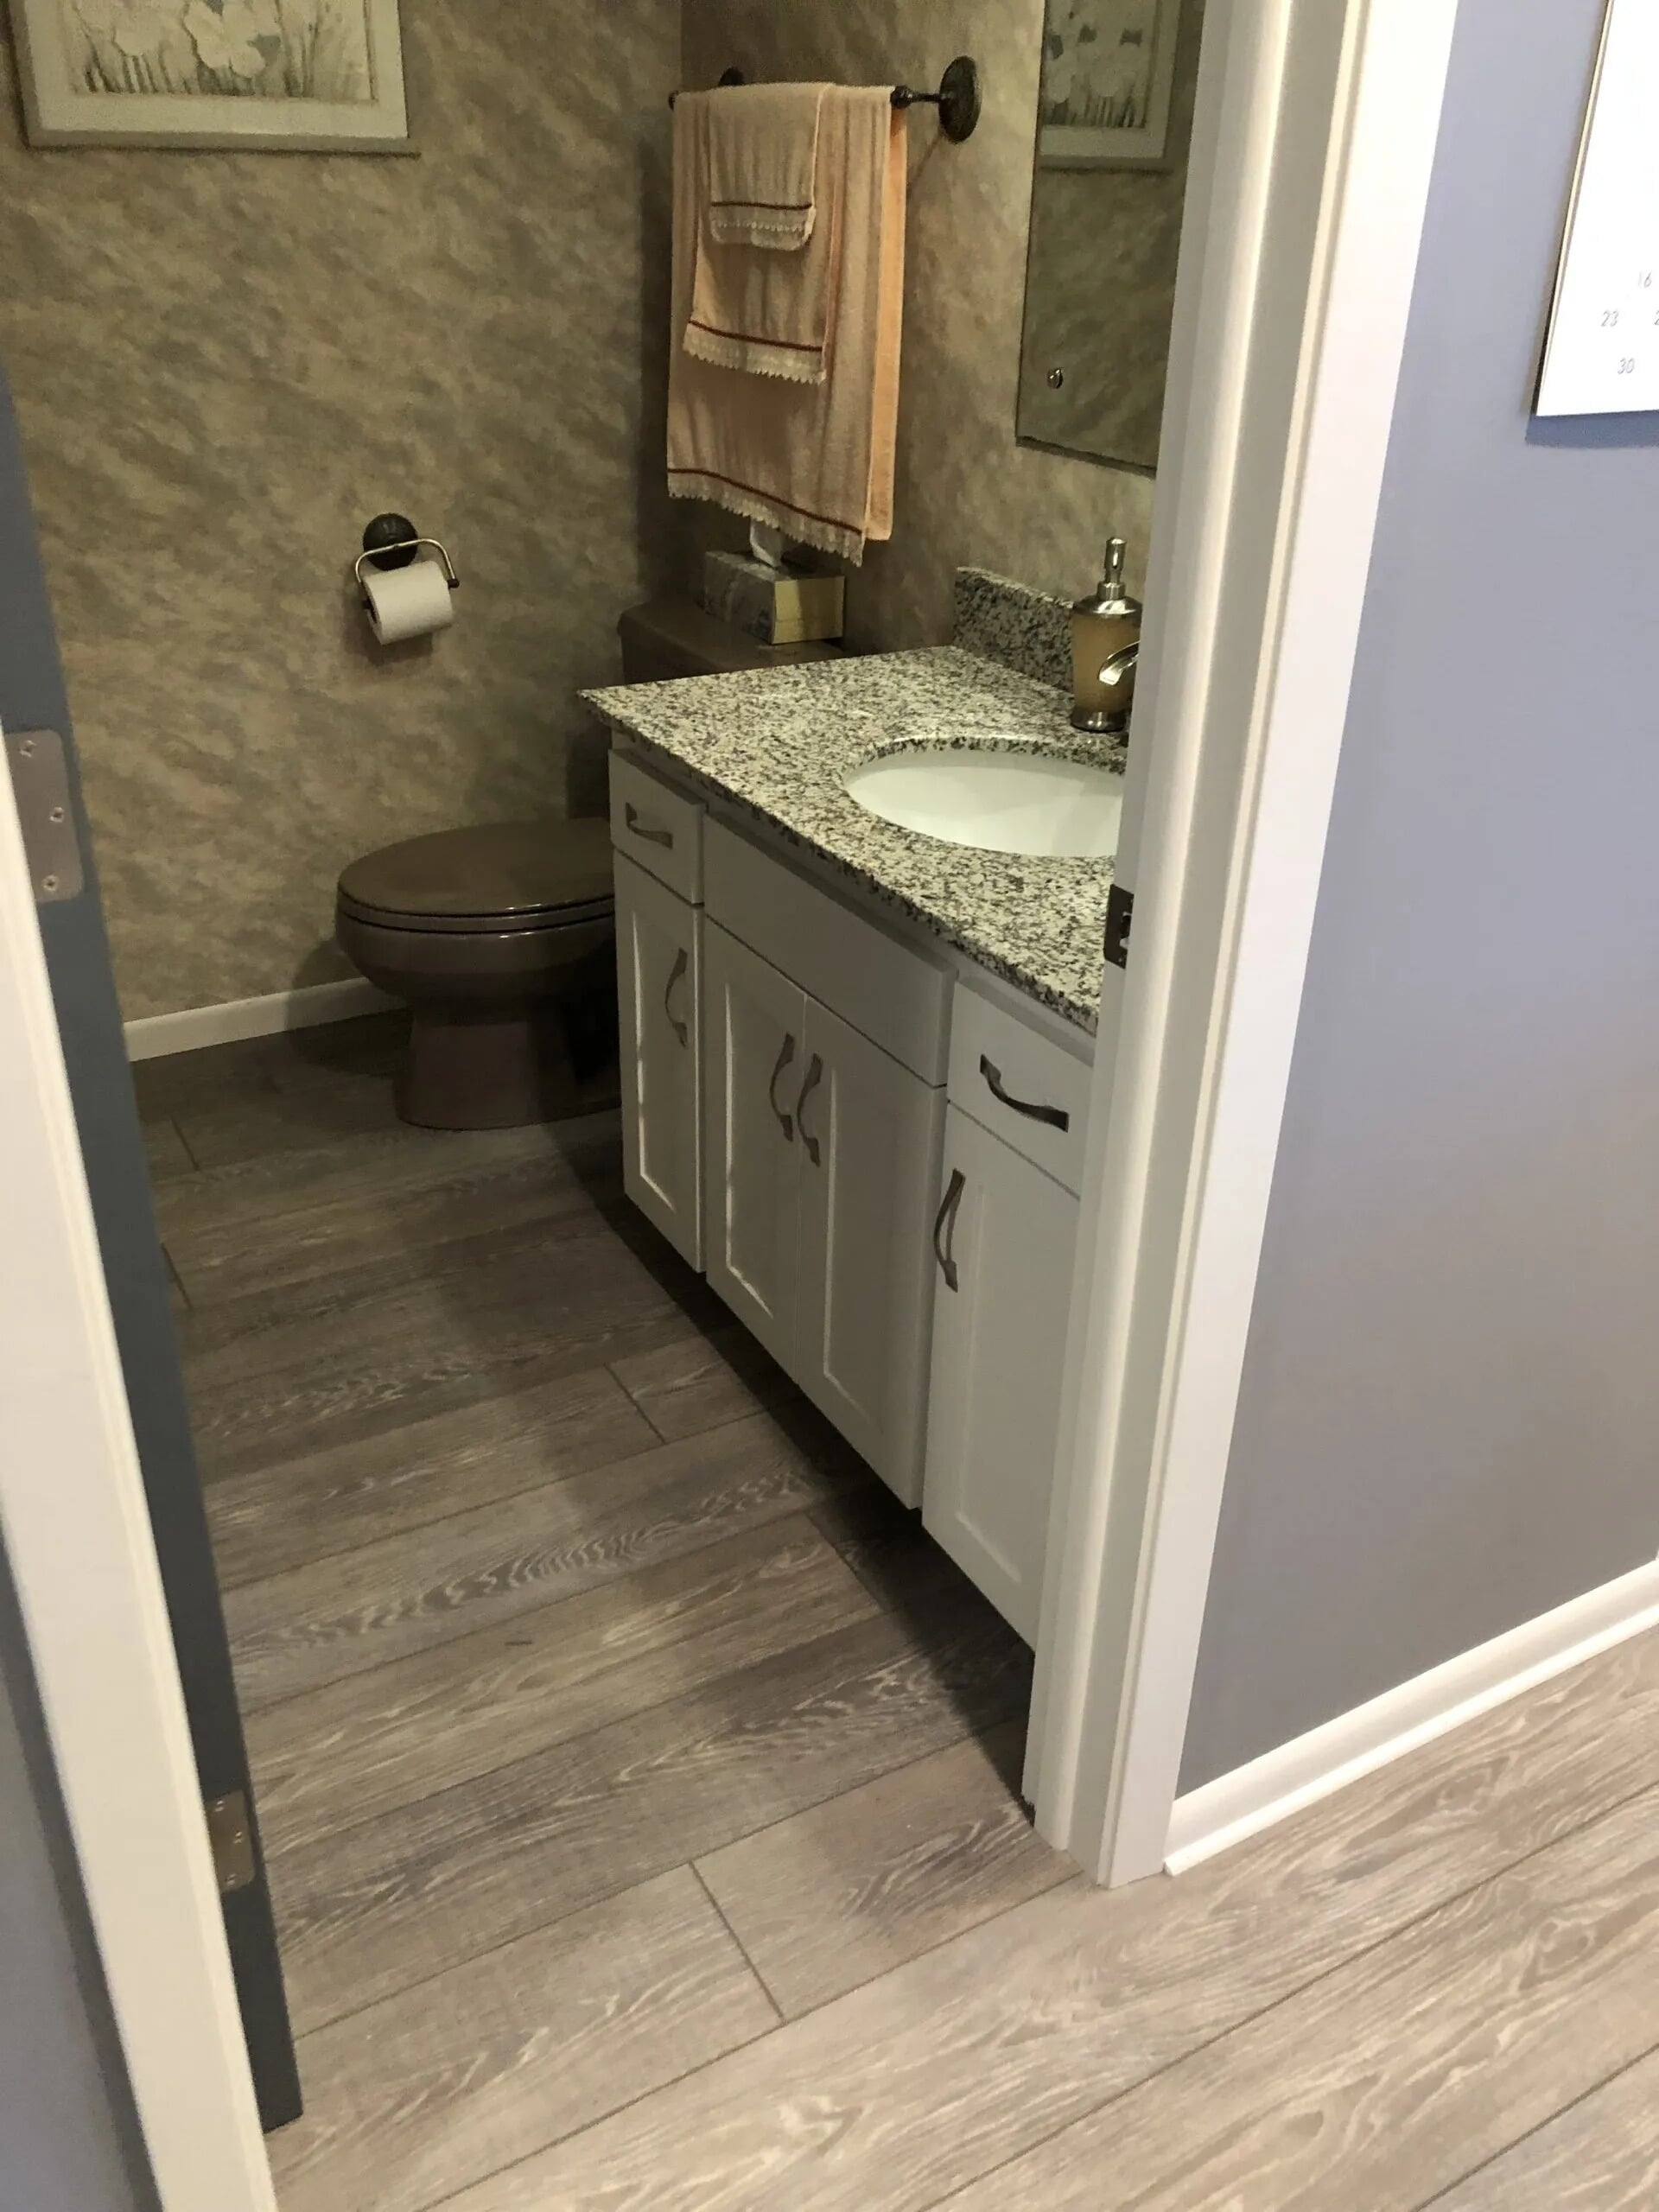 Modern bathroom remodel in Prior Lake, MN from Infinite Floors and More